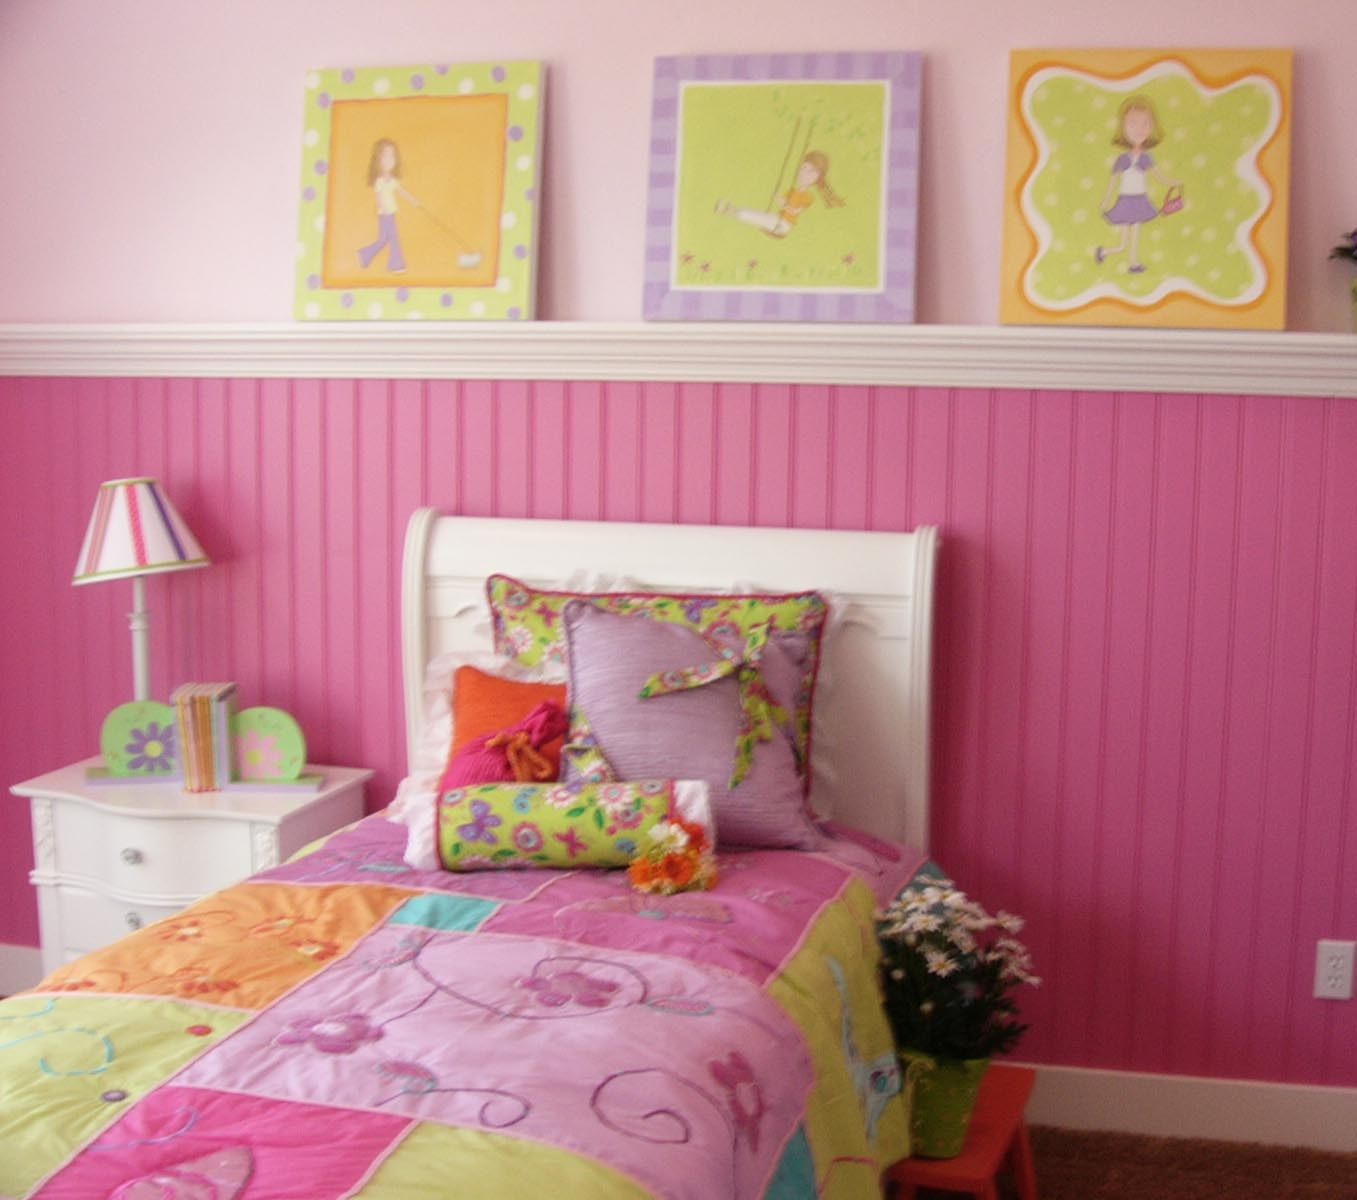 Bedroom Ideas For Girls Bed Ideas And Kids Bedroom: COMO DECORAR EL CUARTO DE UNA NIÑA. 1001 IDEAS